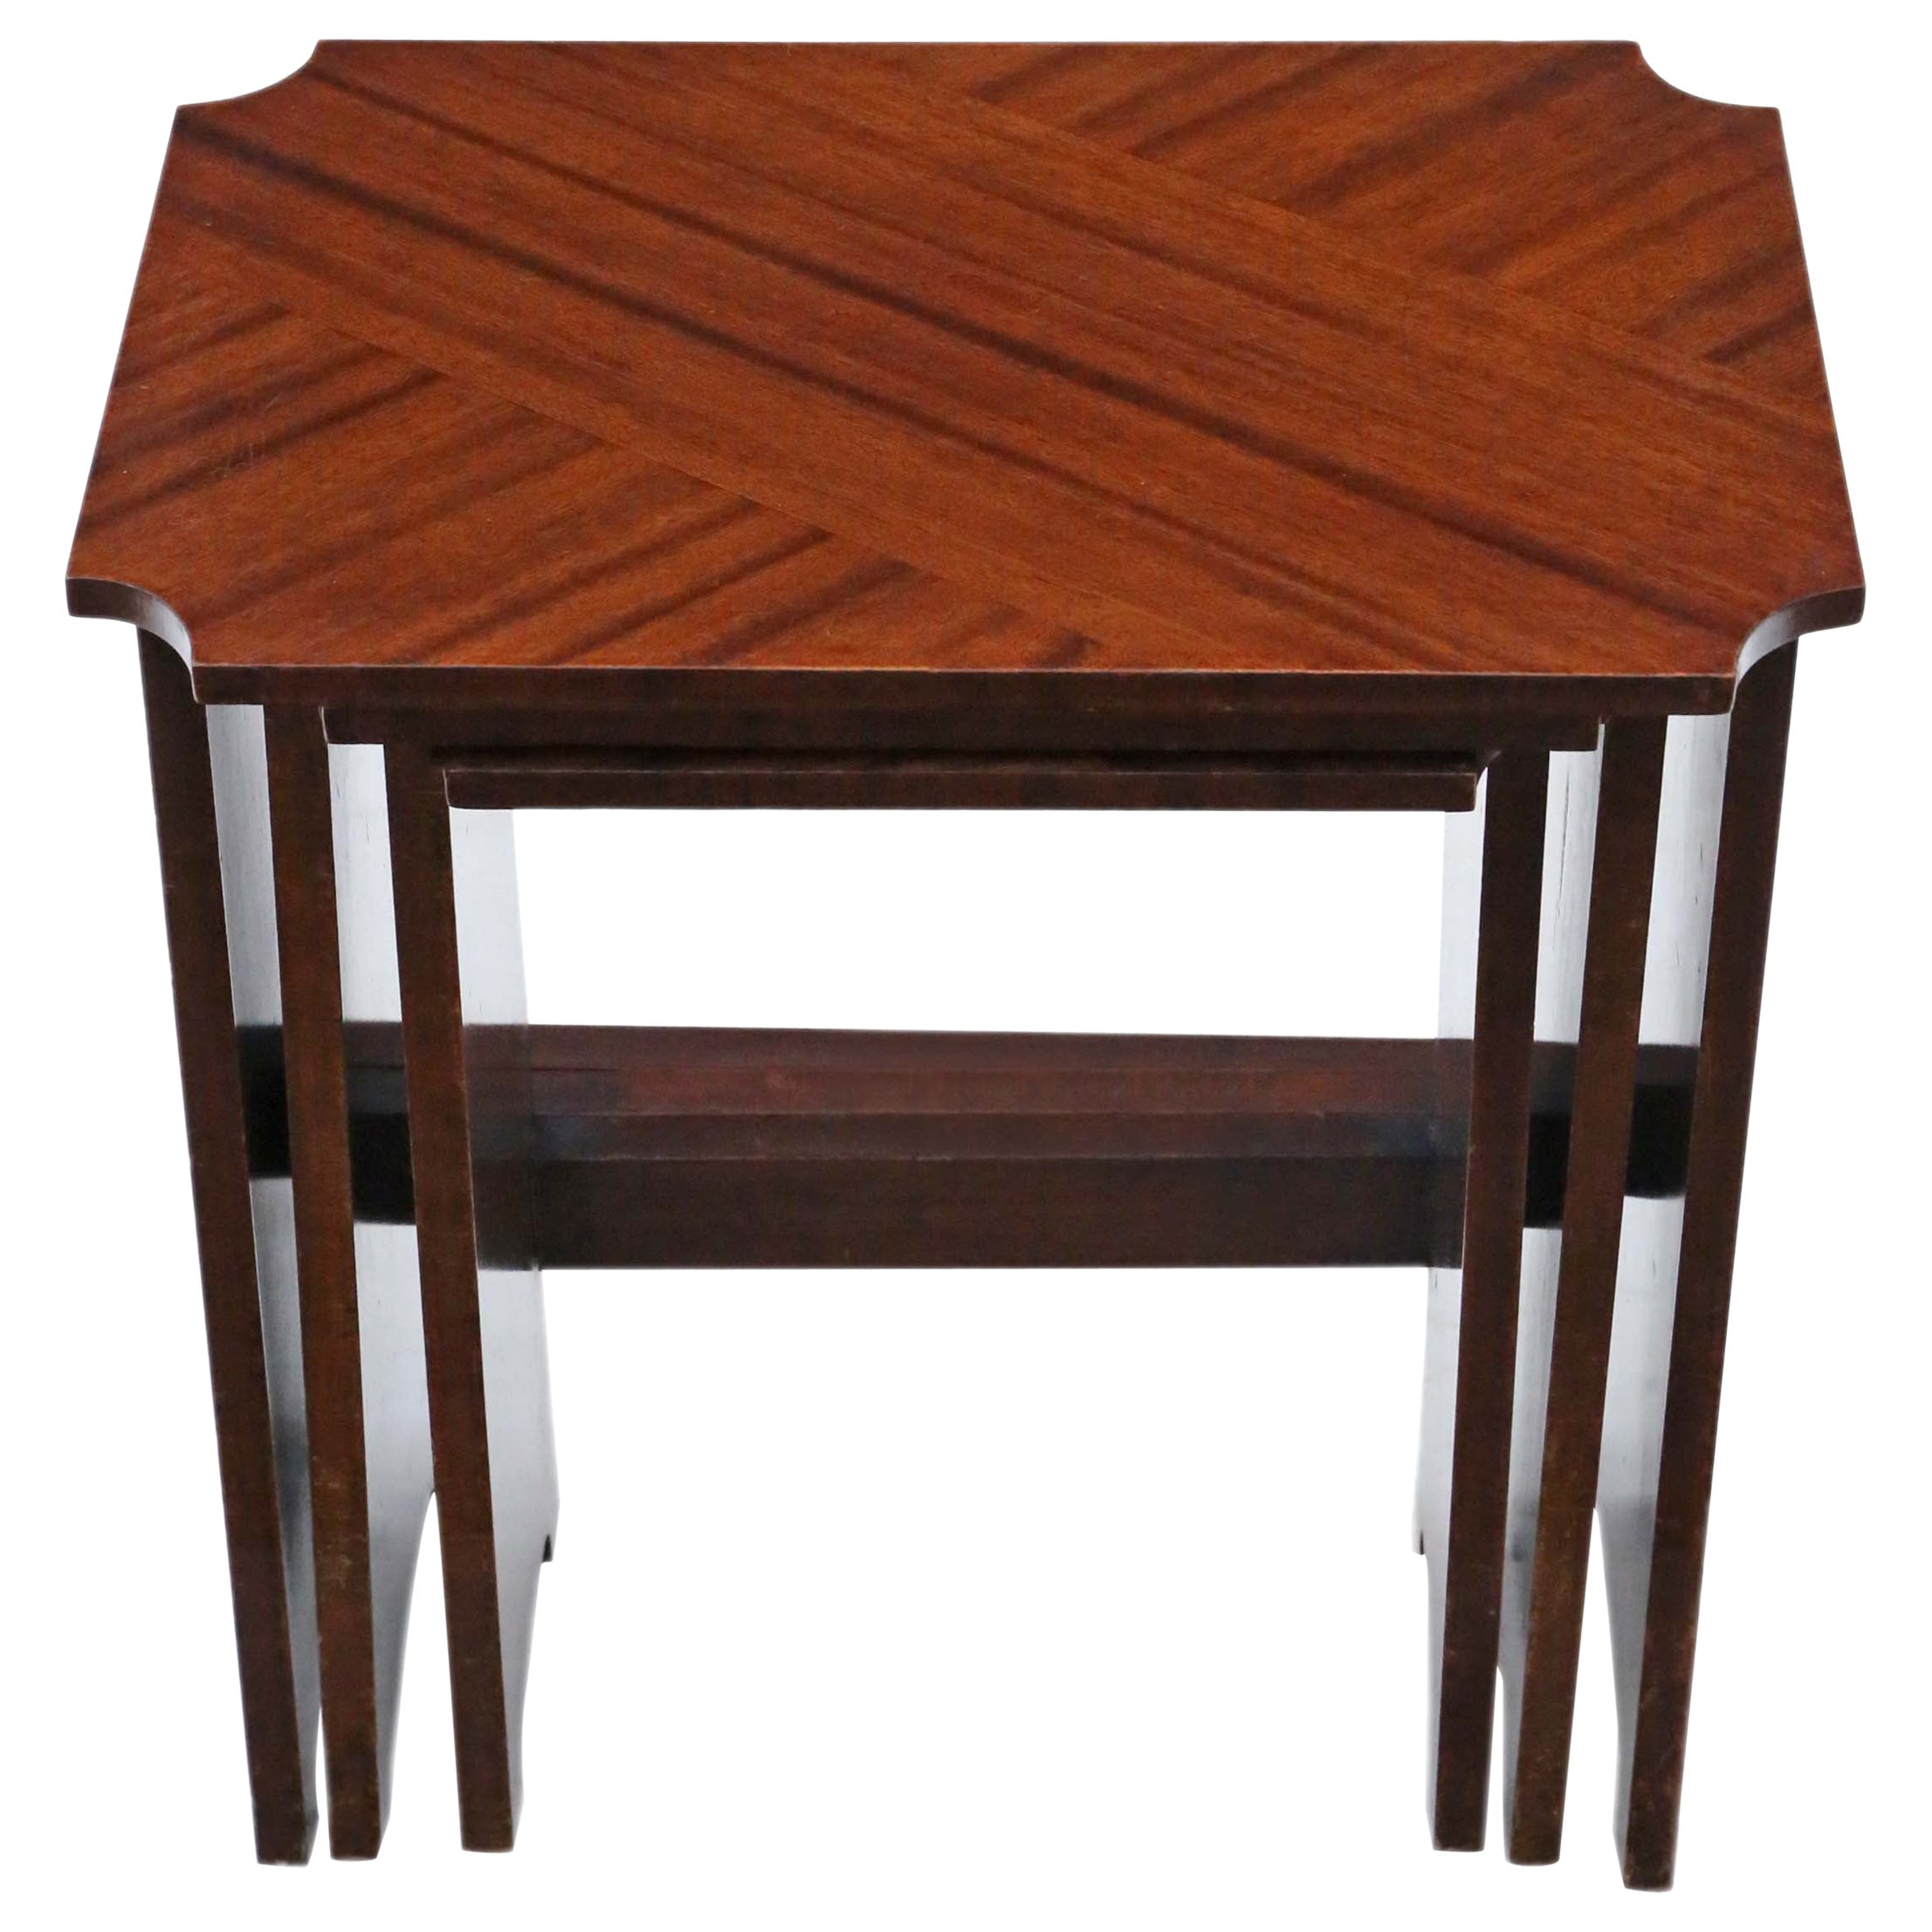 Antique Art Deco Nest of 3 Tables, Early 20th Century